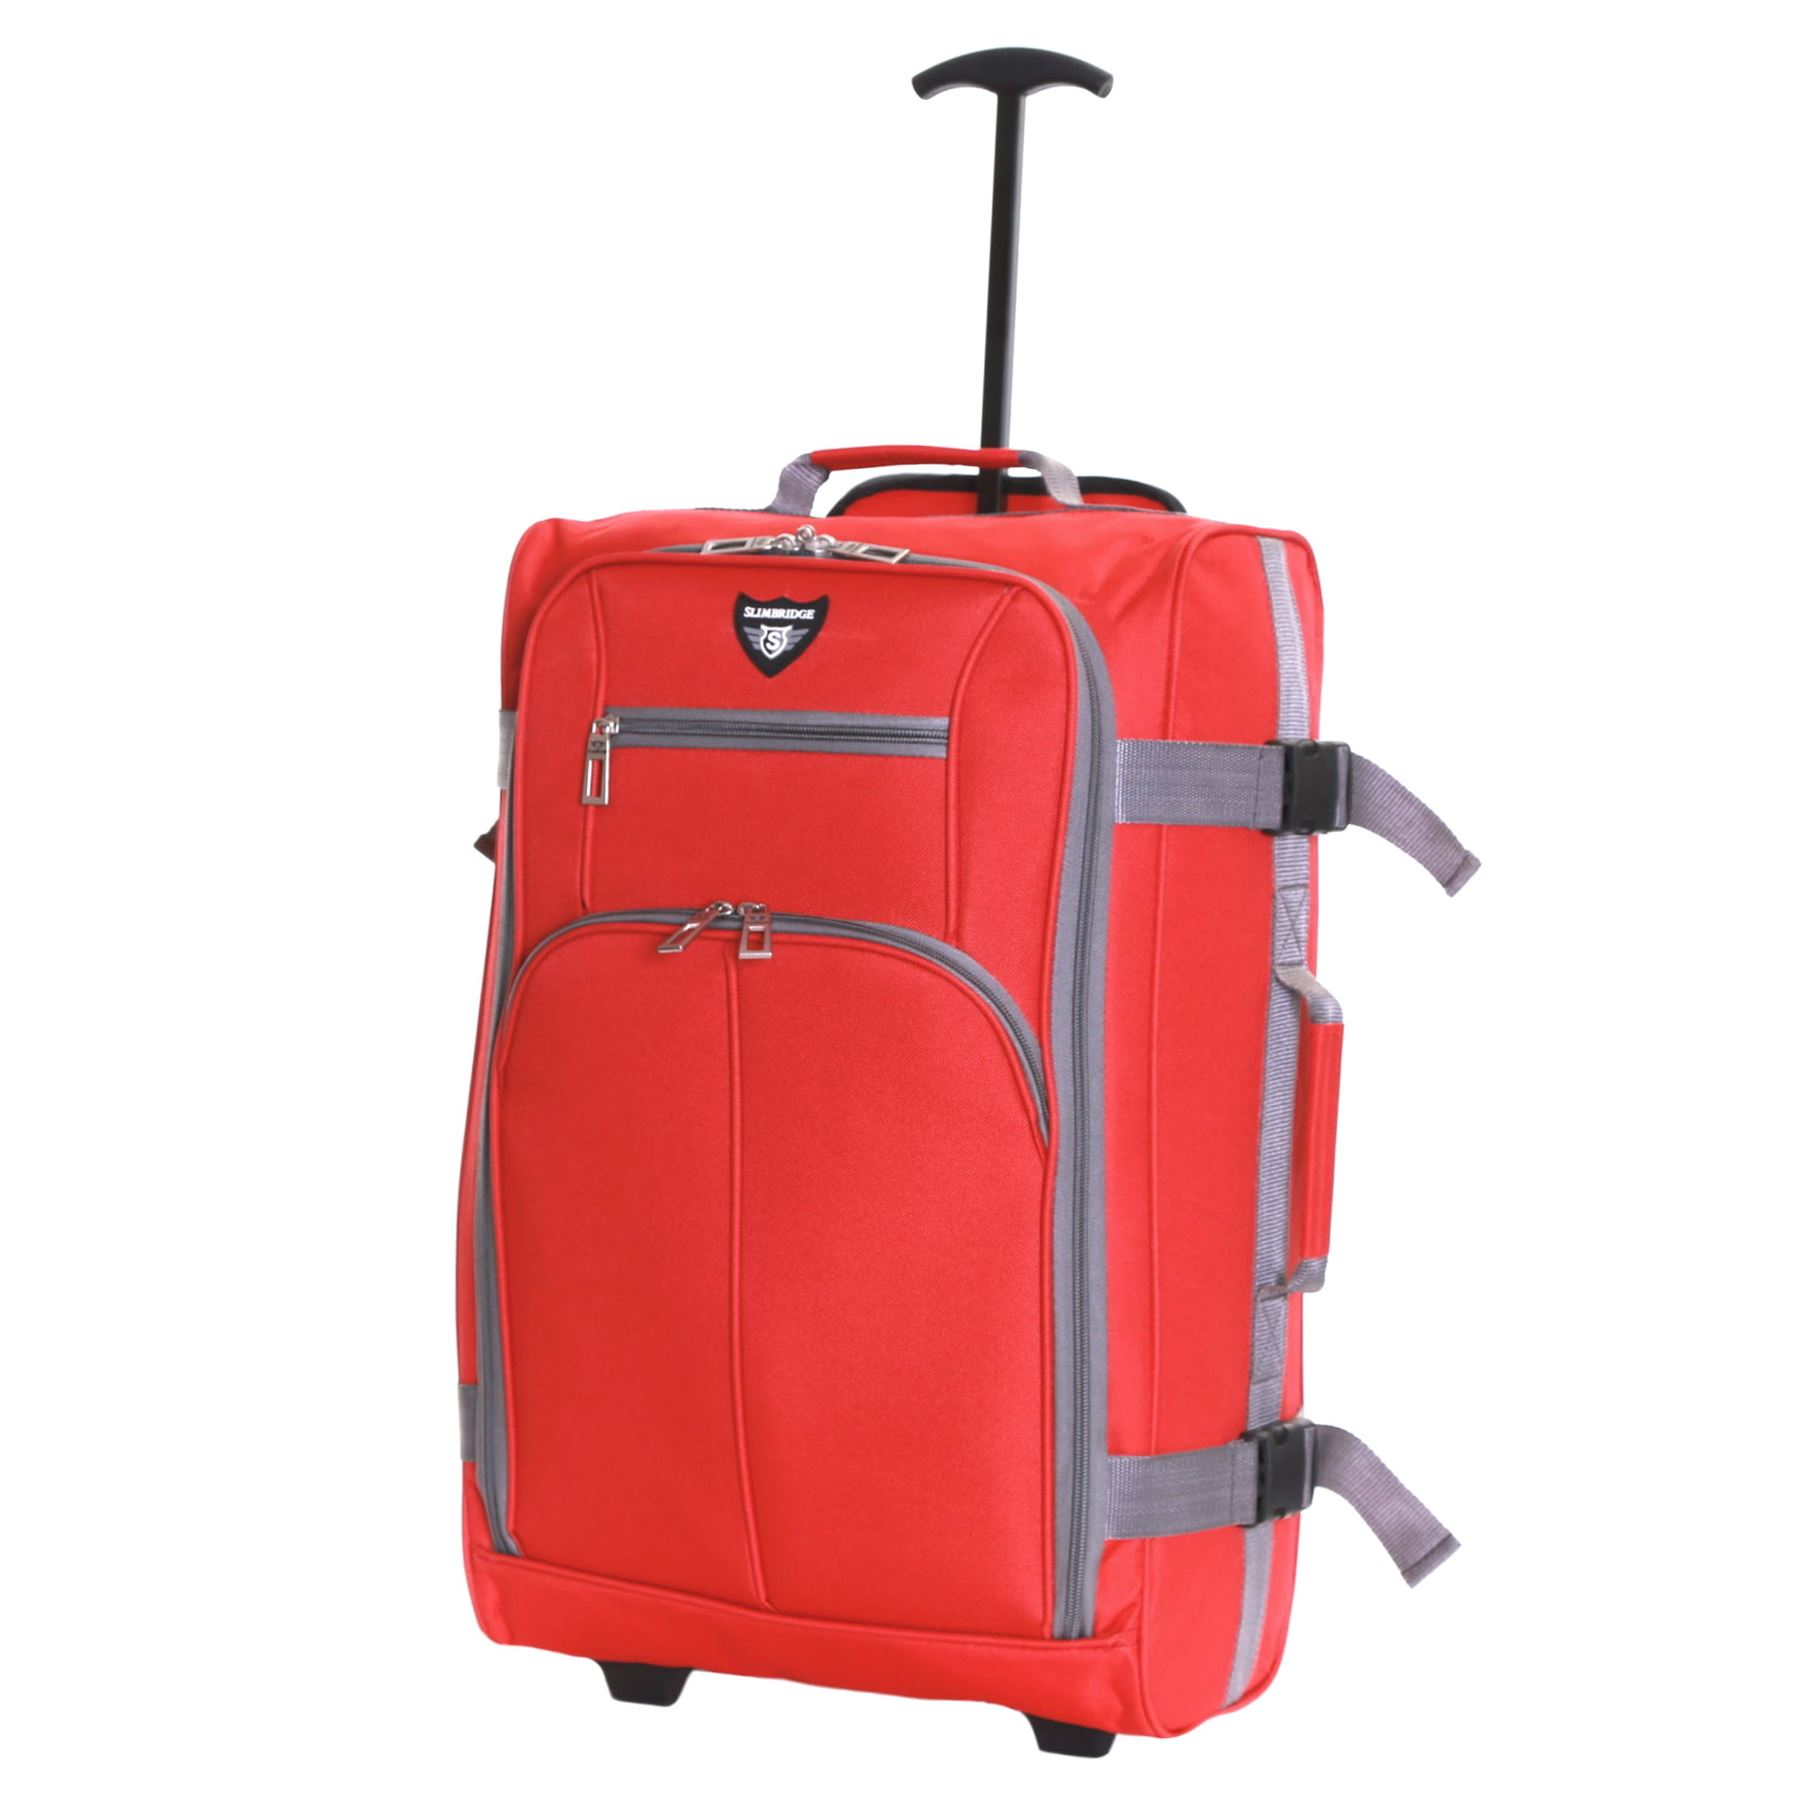 Ryanair-Easyjet-Set-of-2-Cabin-Approved-Hand-Trolley-Suitcases-Luggage-Case-Bags thumbnail 30